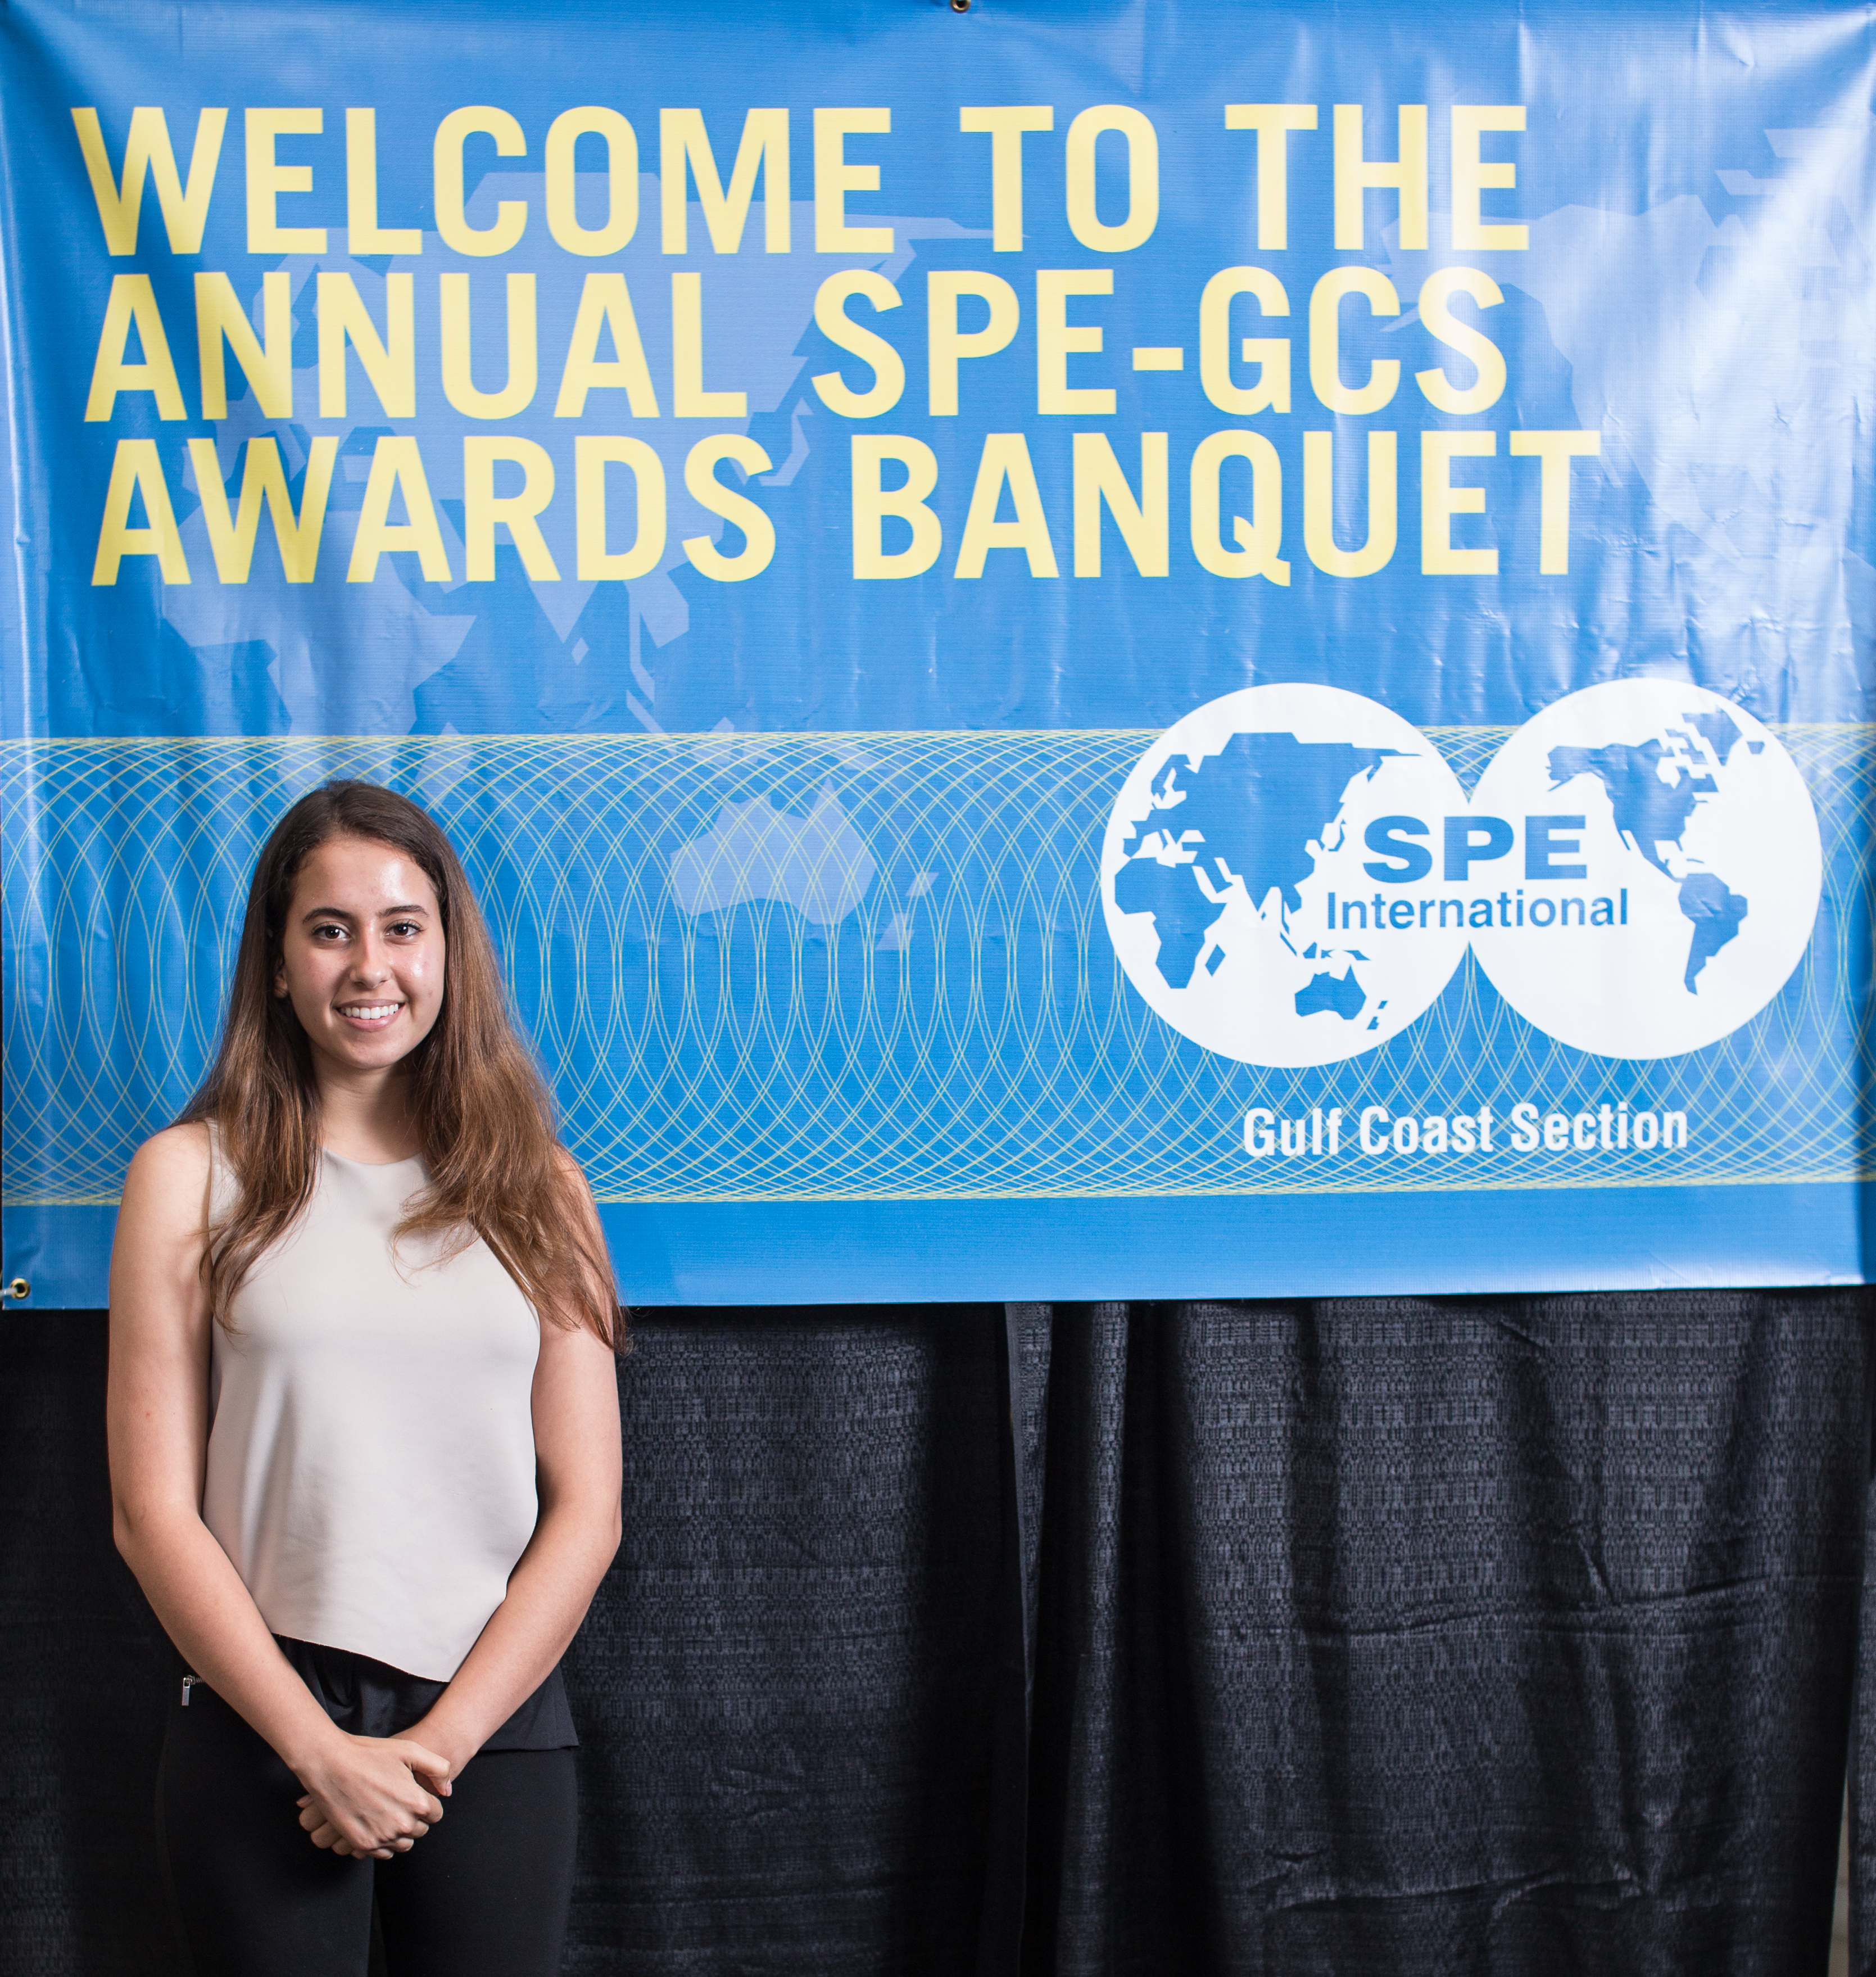 SPE-GCS Annual Awards Banquet